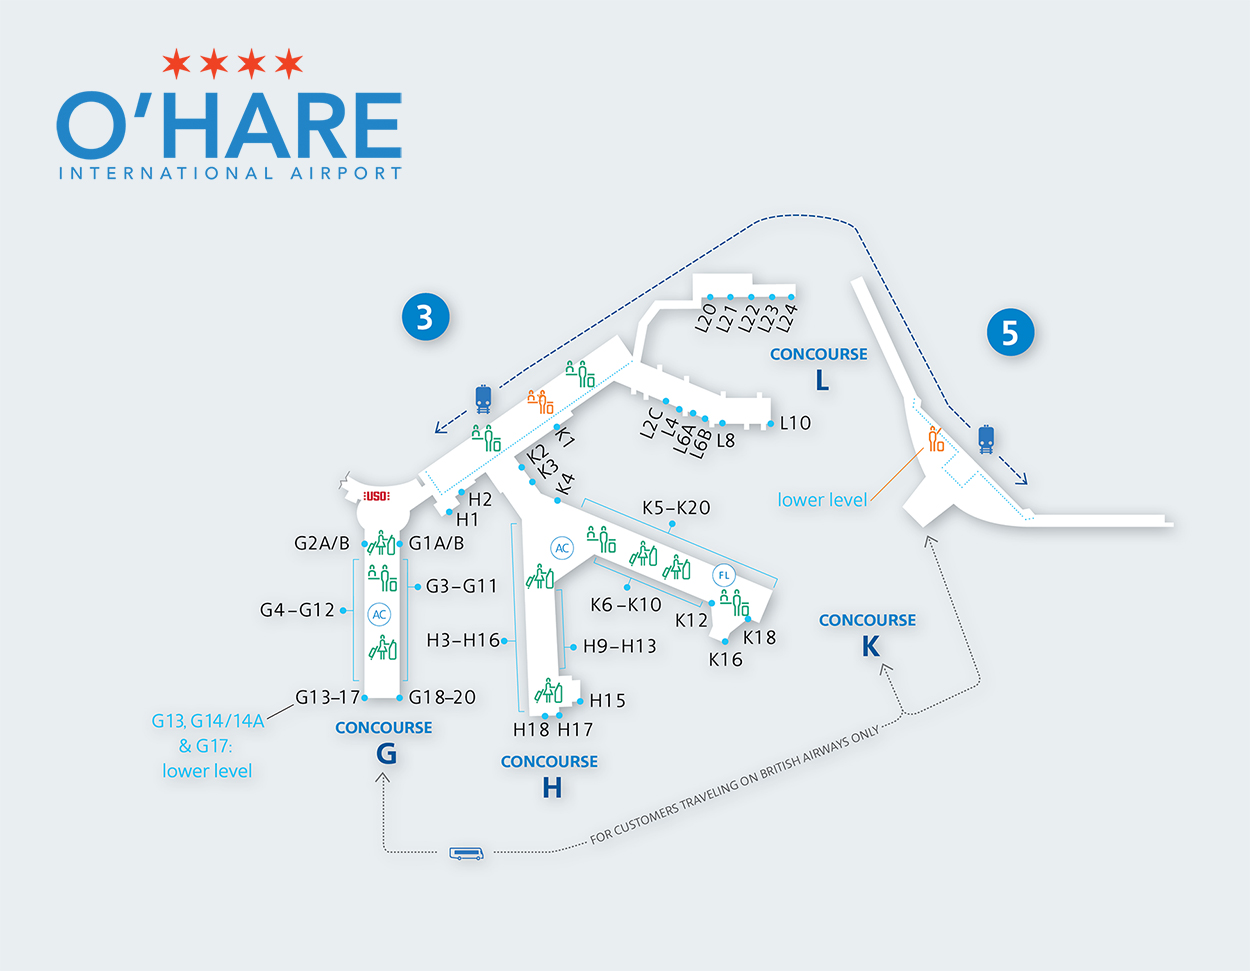 Chicago O'Hare L-Stringer gate map